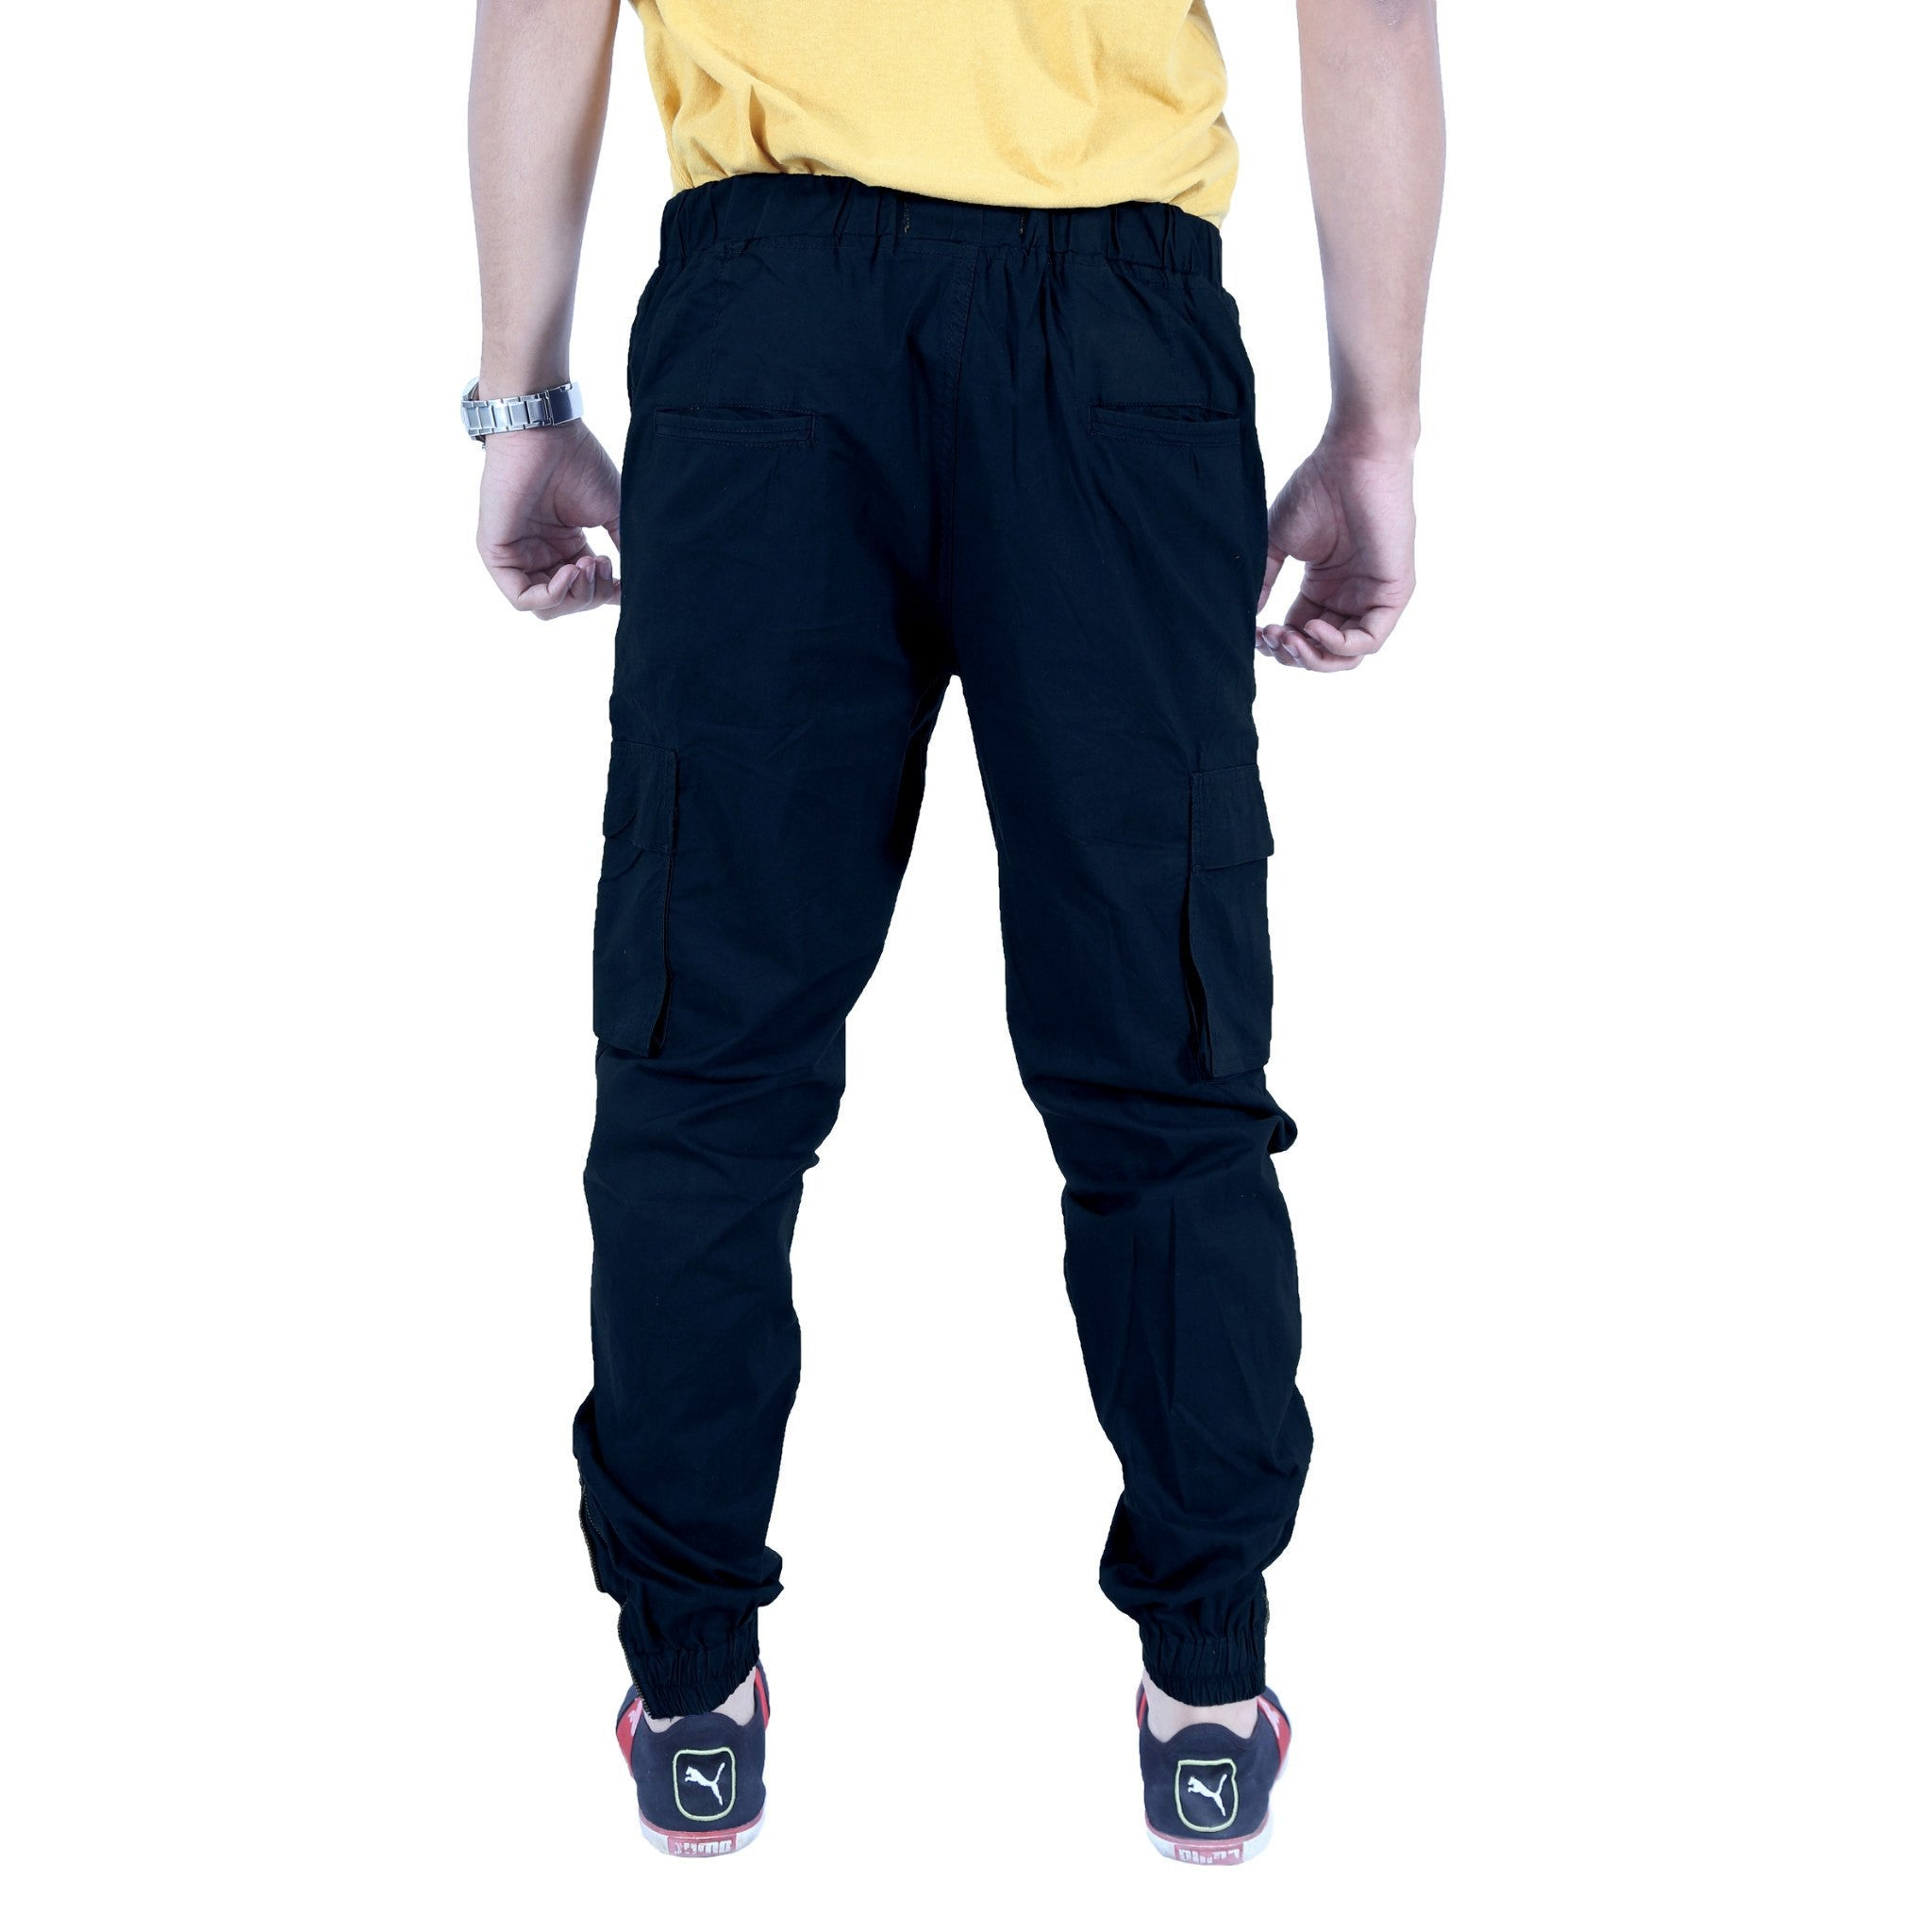 Uber Blacklue Cotton Trouser back view